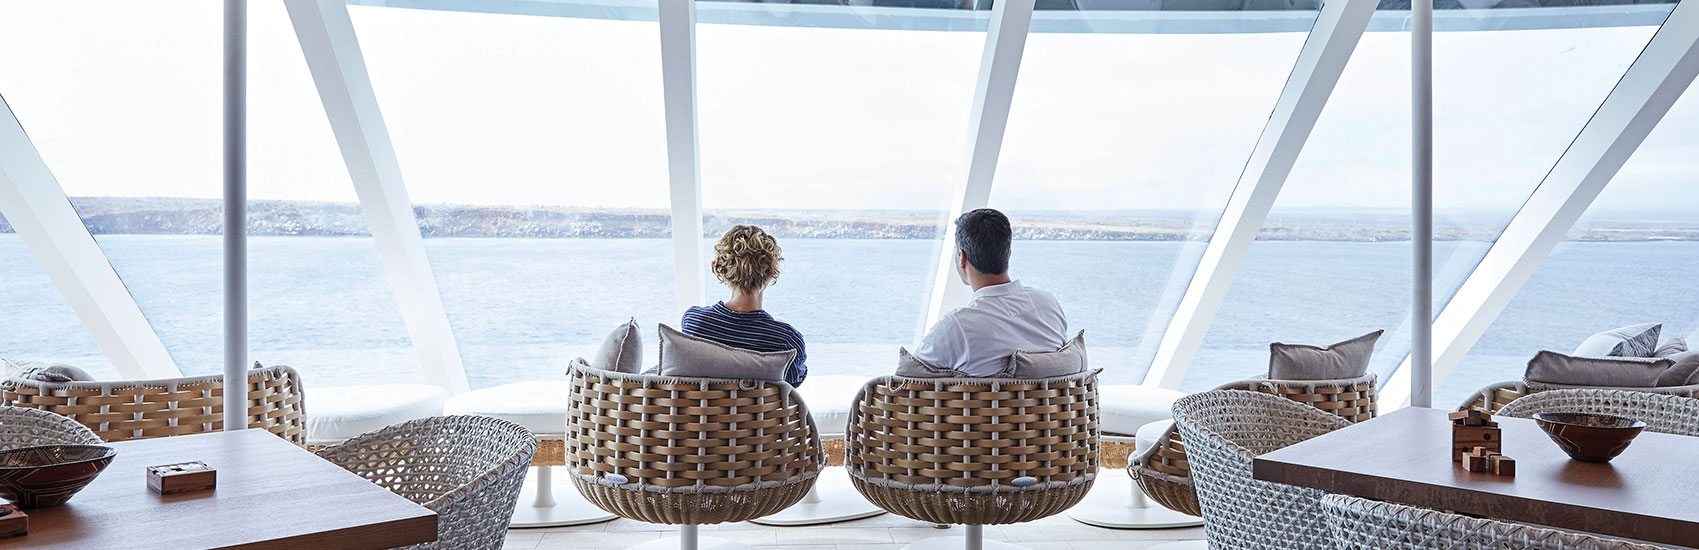 Explore the Galapagos on an All Suite Luxury Mega Yacht 2